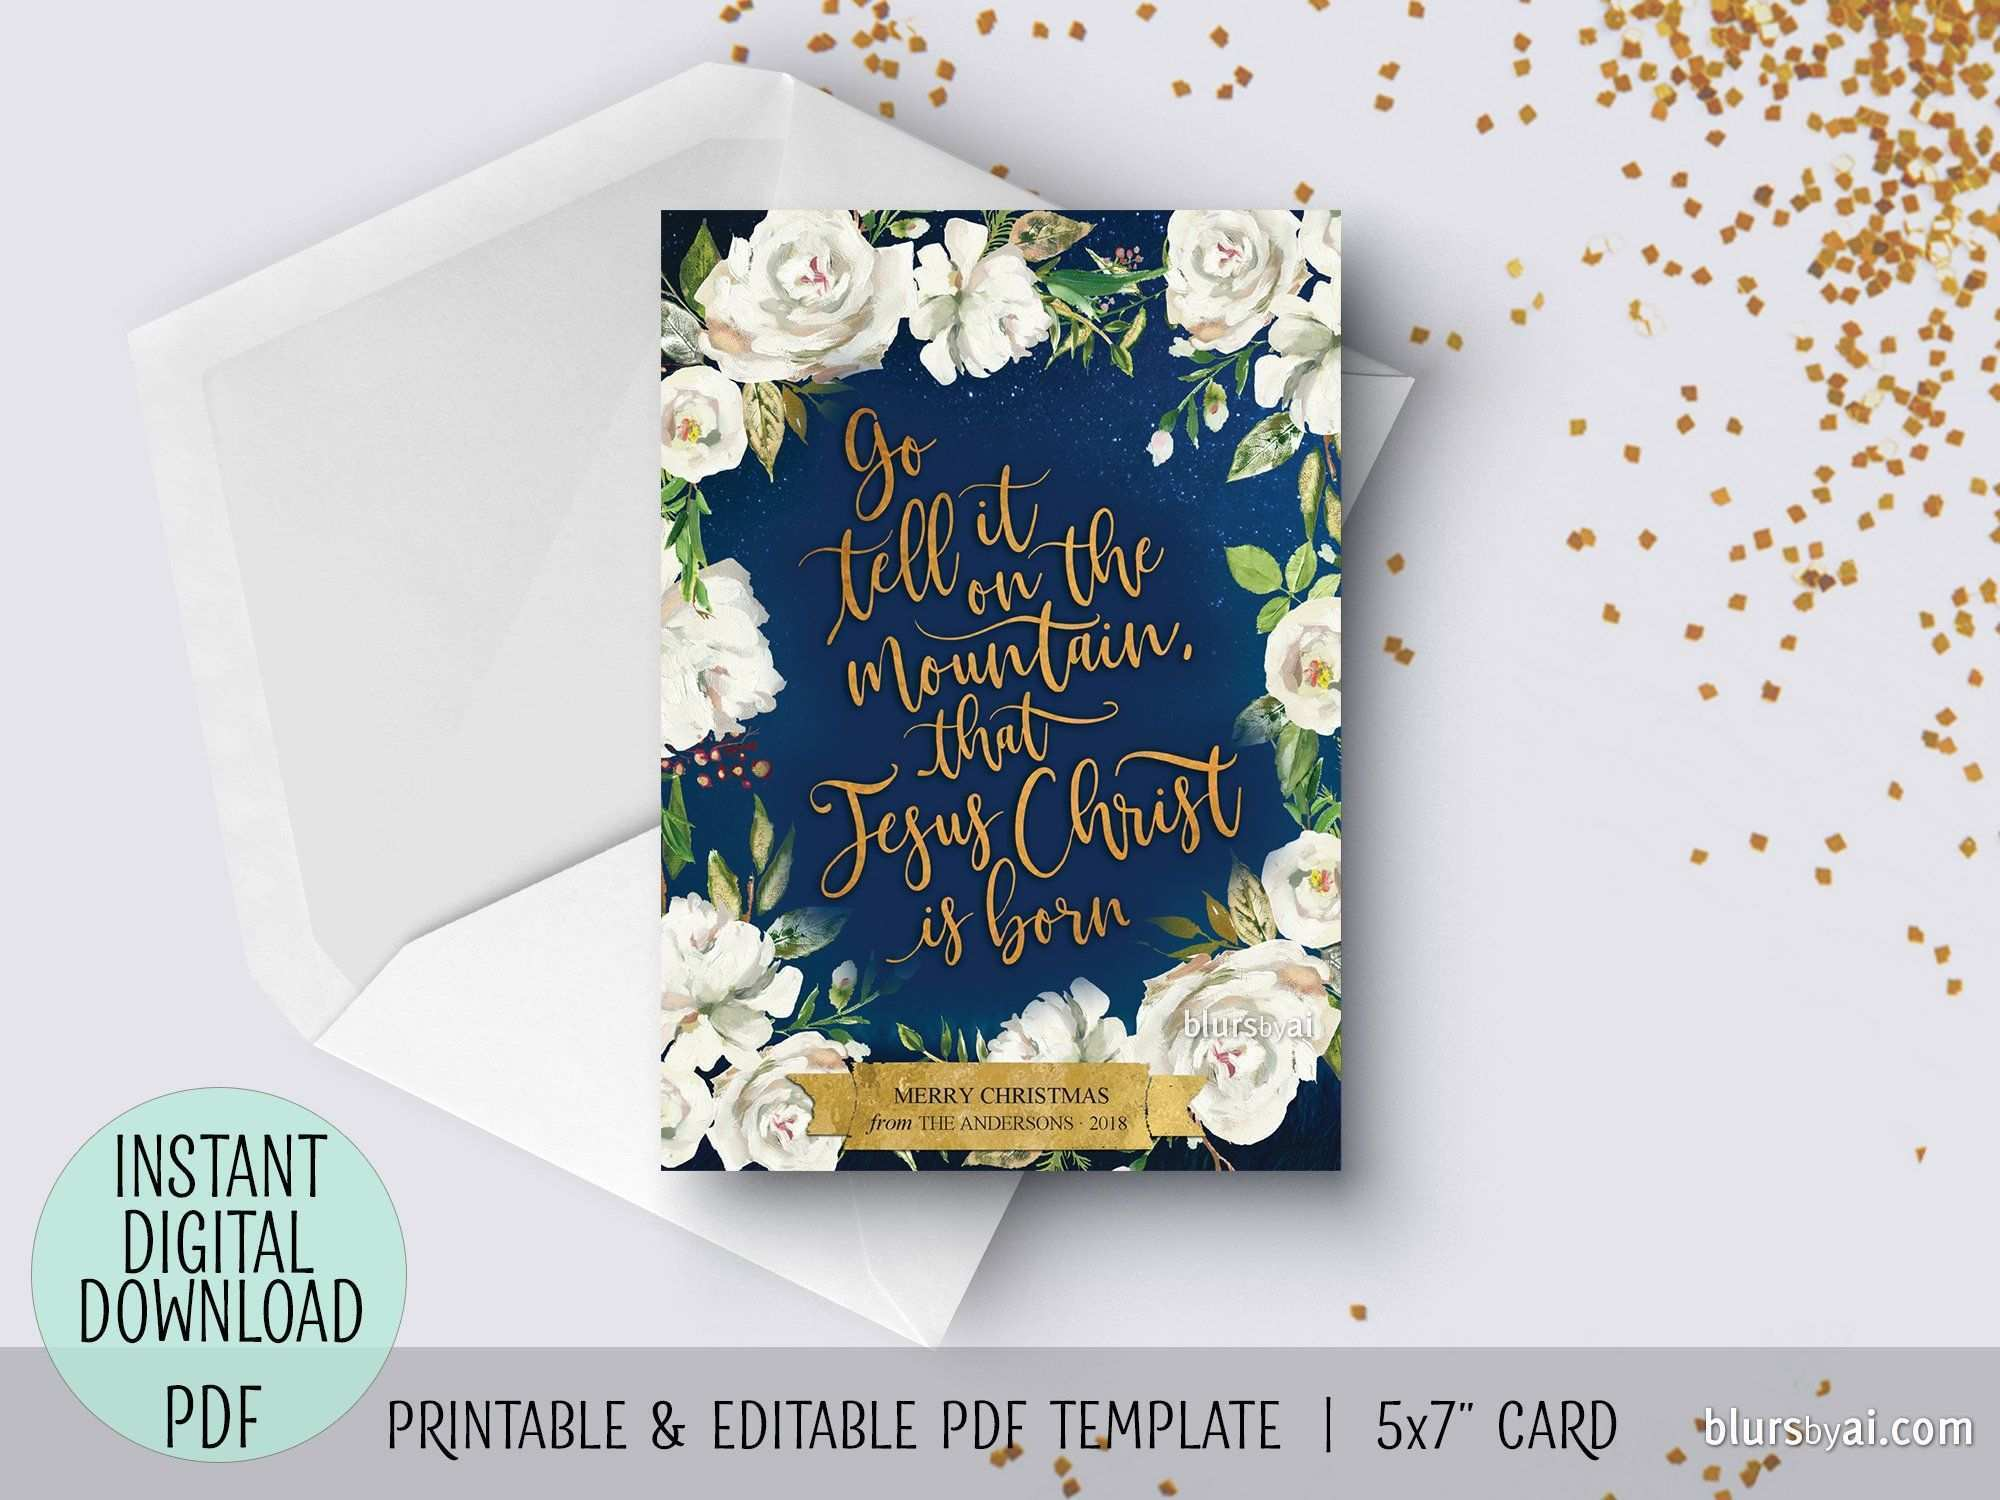 94 Free Do It Yourself Christmas Card Templates Layouts with Do It Yourself Christmas Card Templates